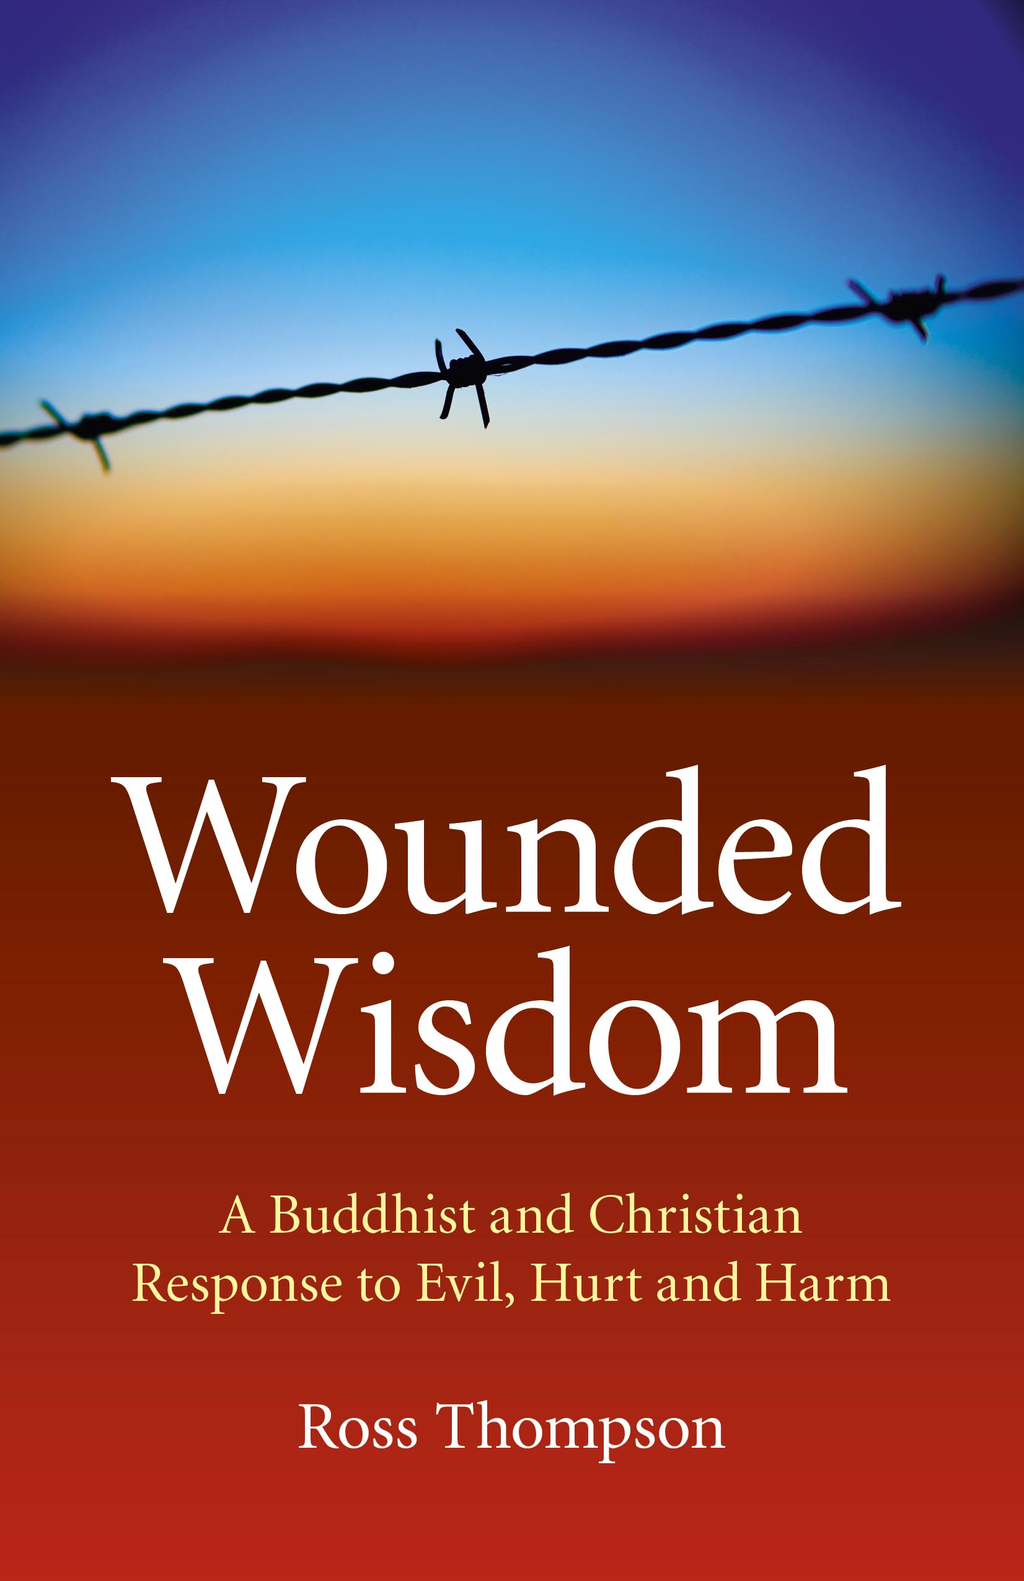 Wounded Wisdom: A Buddhist and Christian Response to Evil, Hurt and Harm